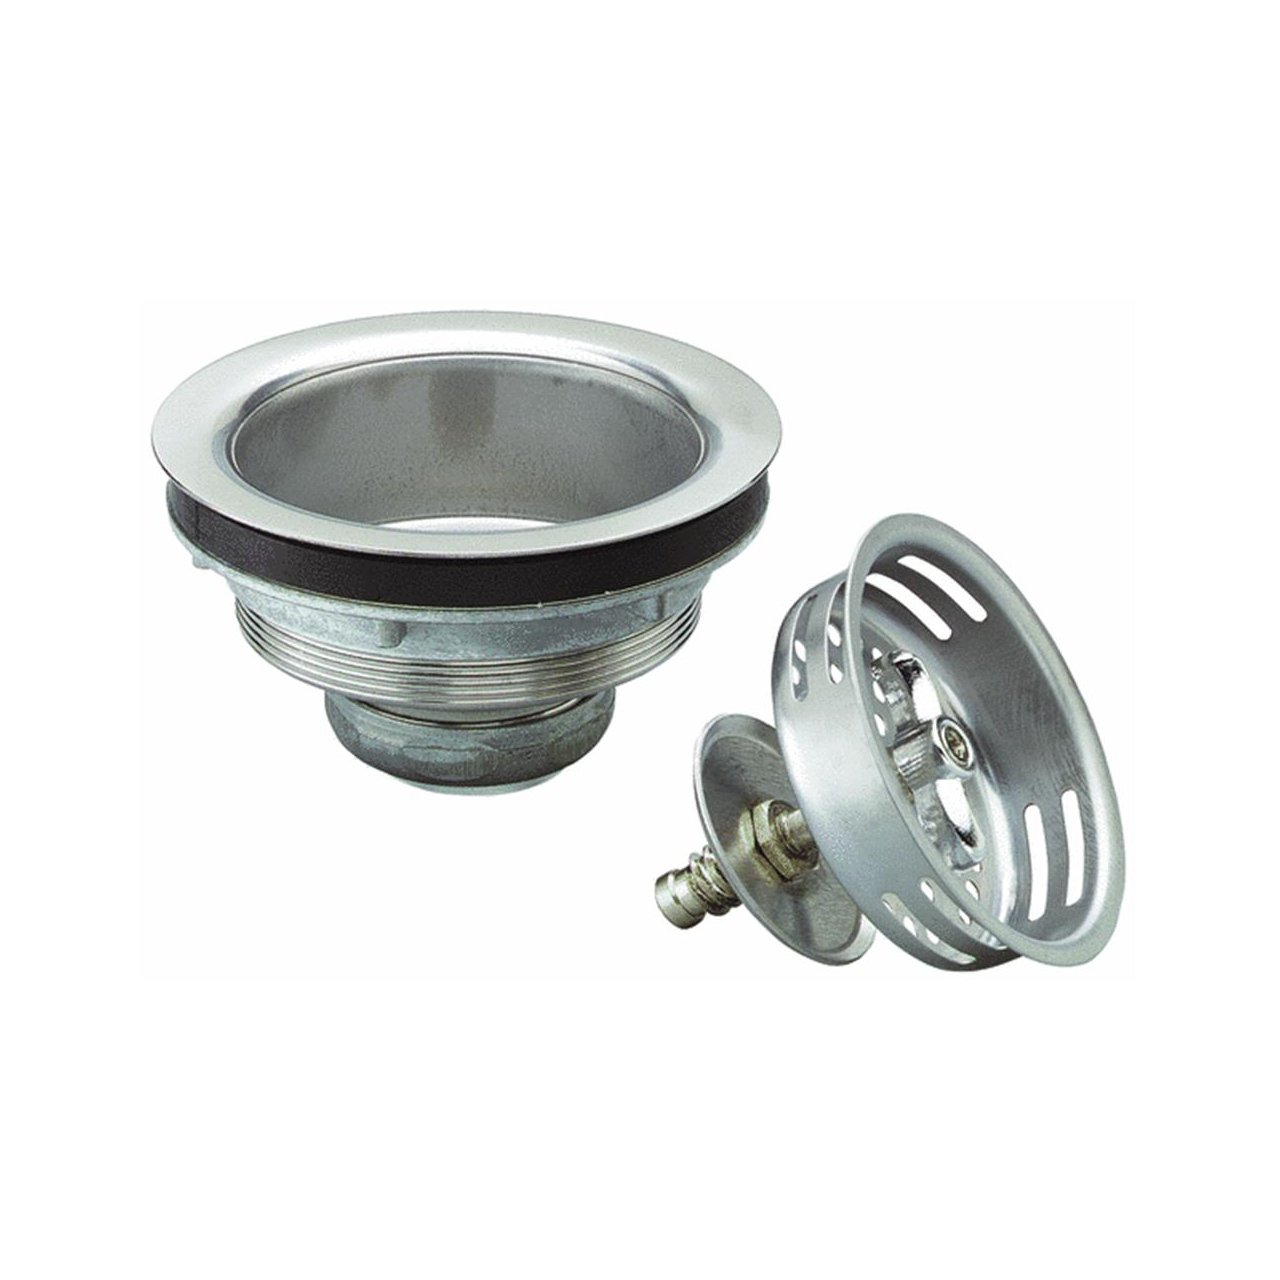 Keeney 1433SS Sink Strainer with Turn 2 Seal Basket